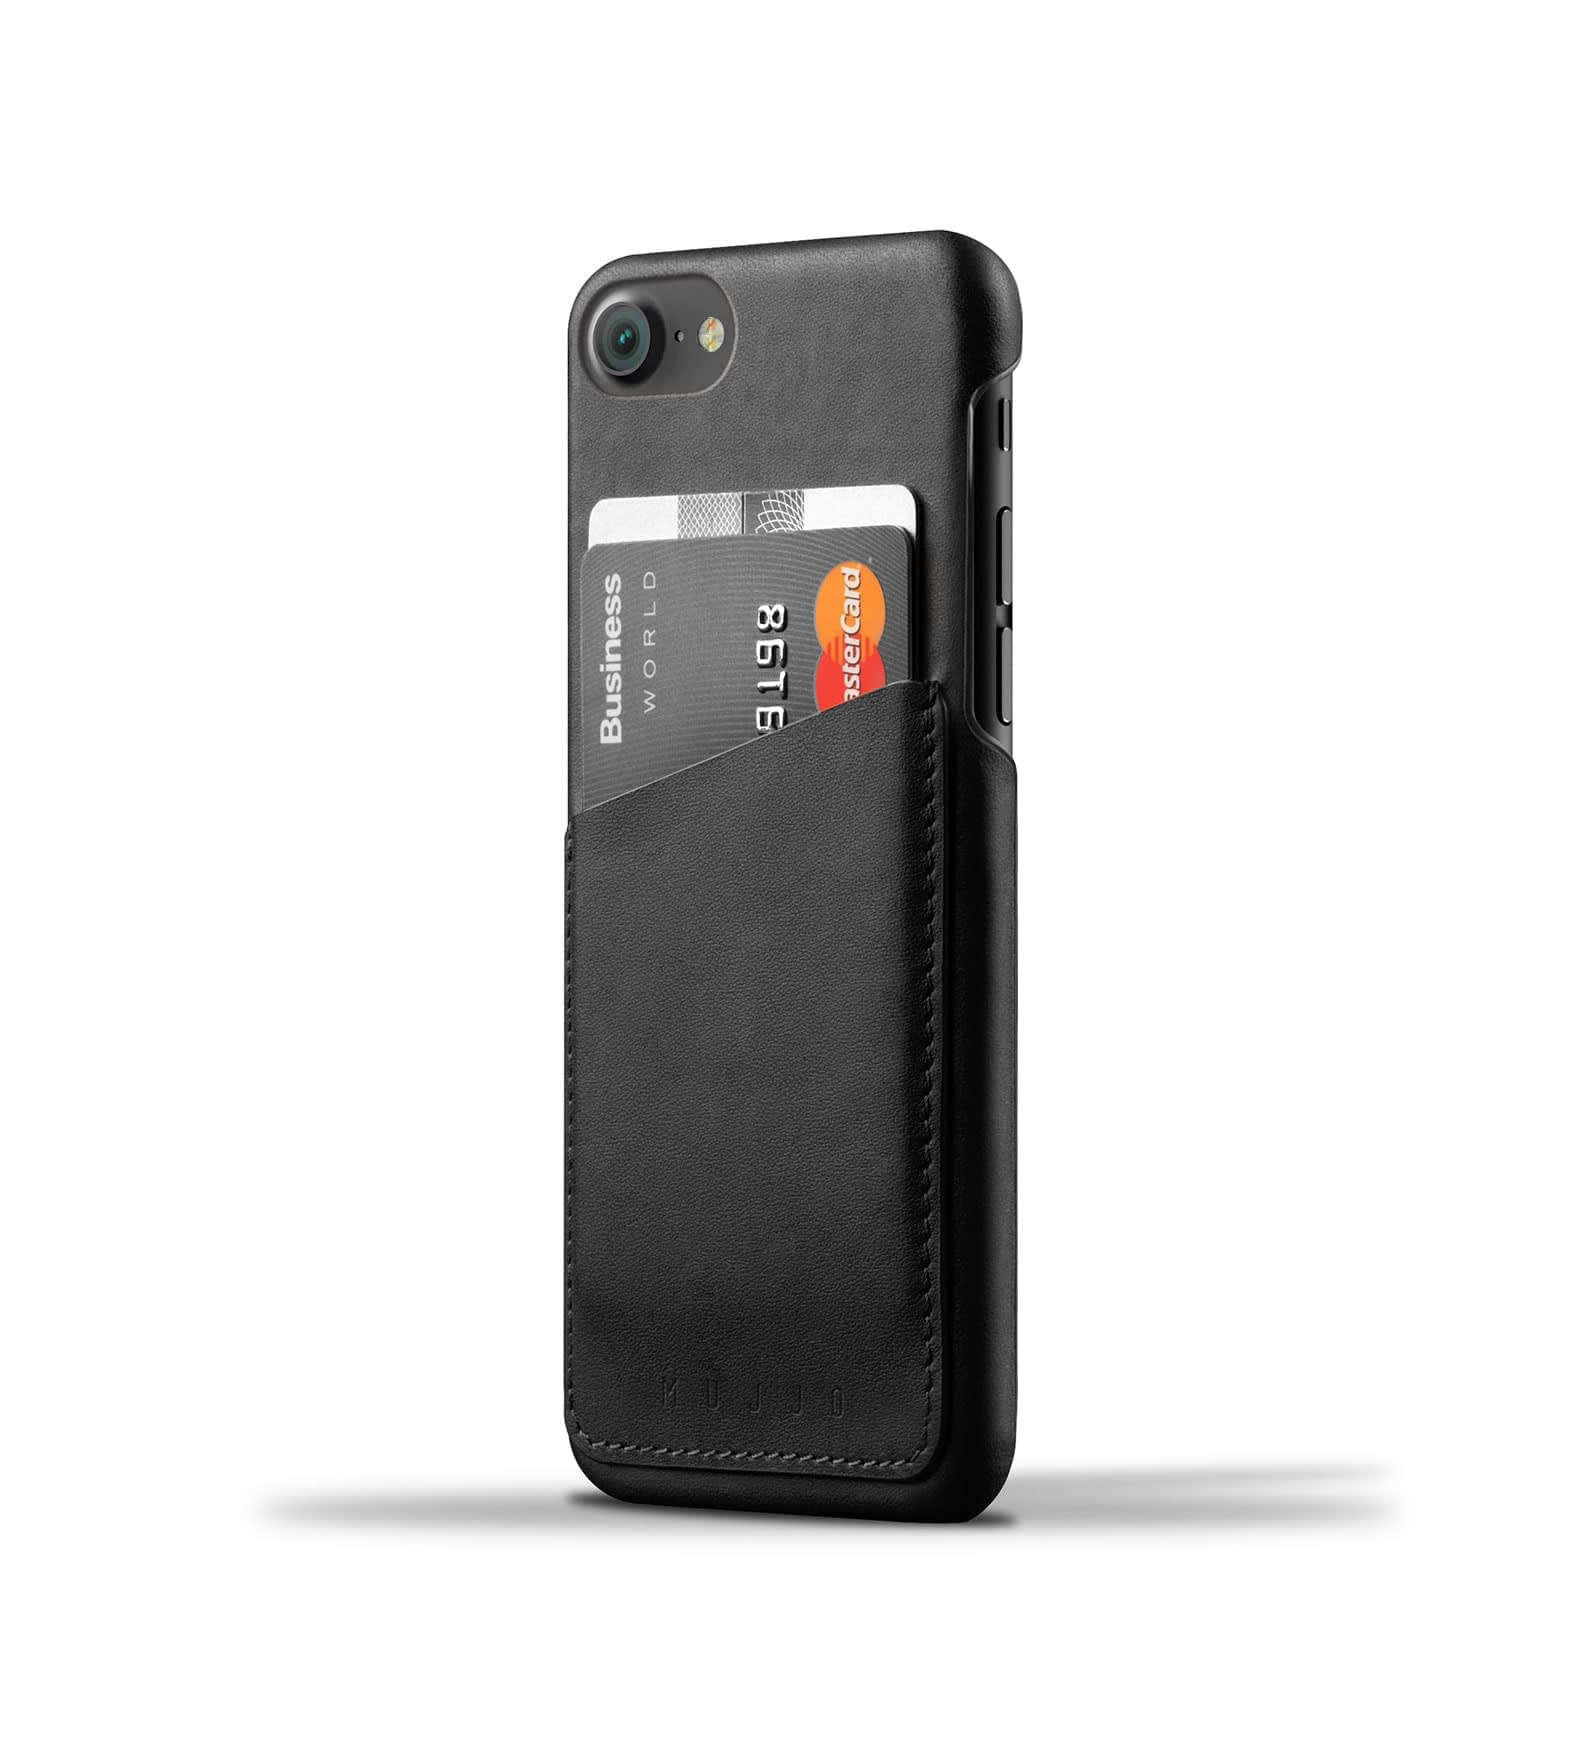 Leather Wallet Case for iPhone 8 / 7 - Black 1